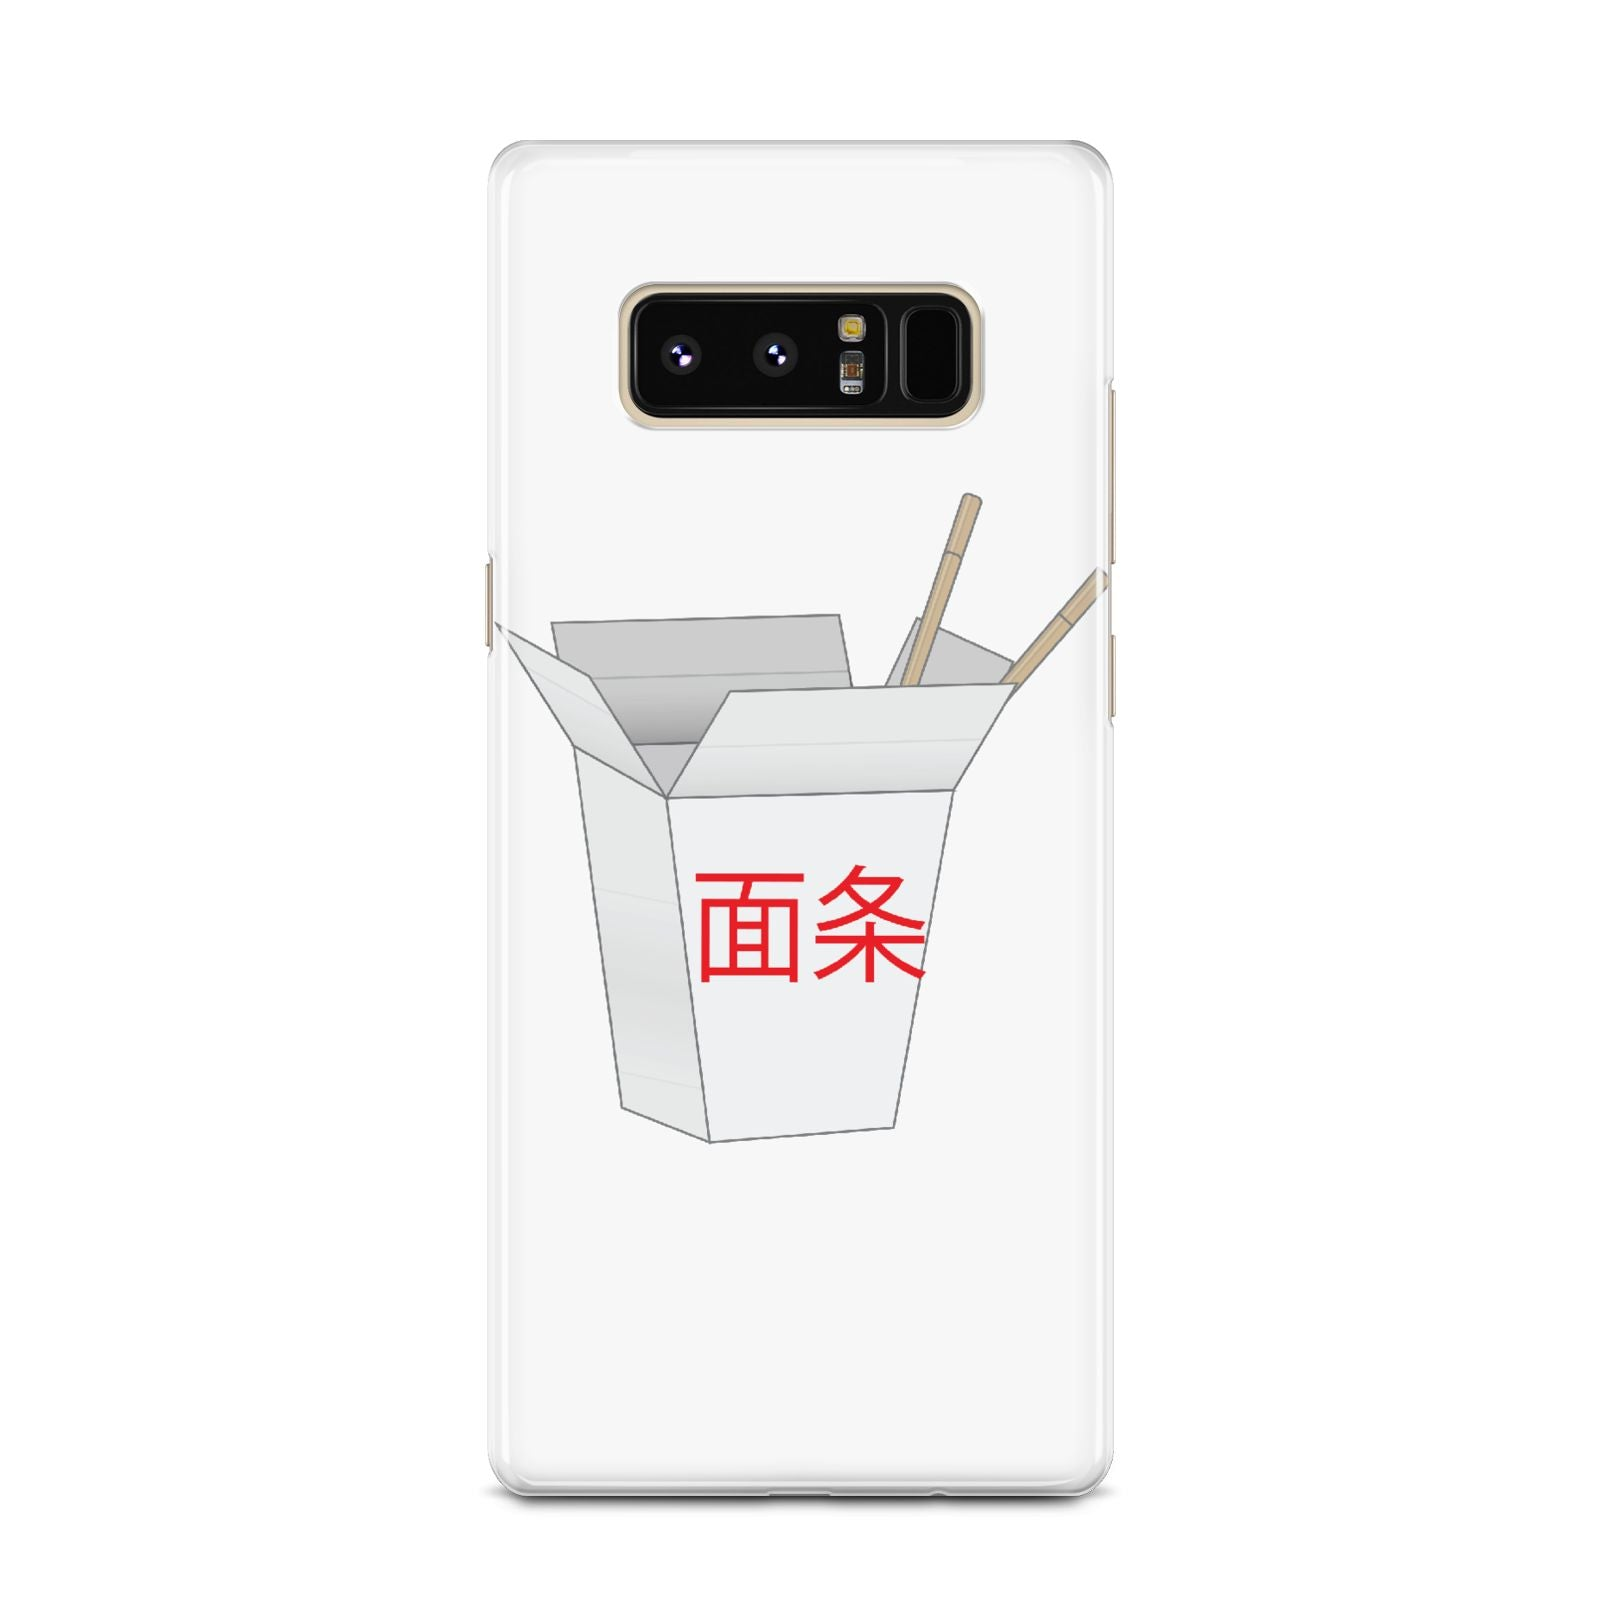 Chinese Takeaway Box Samsung Galaxy Note 8 Case